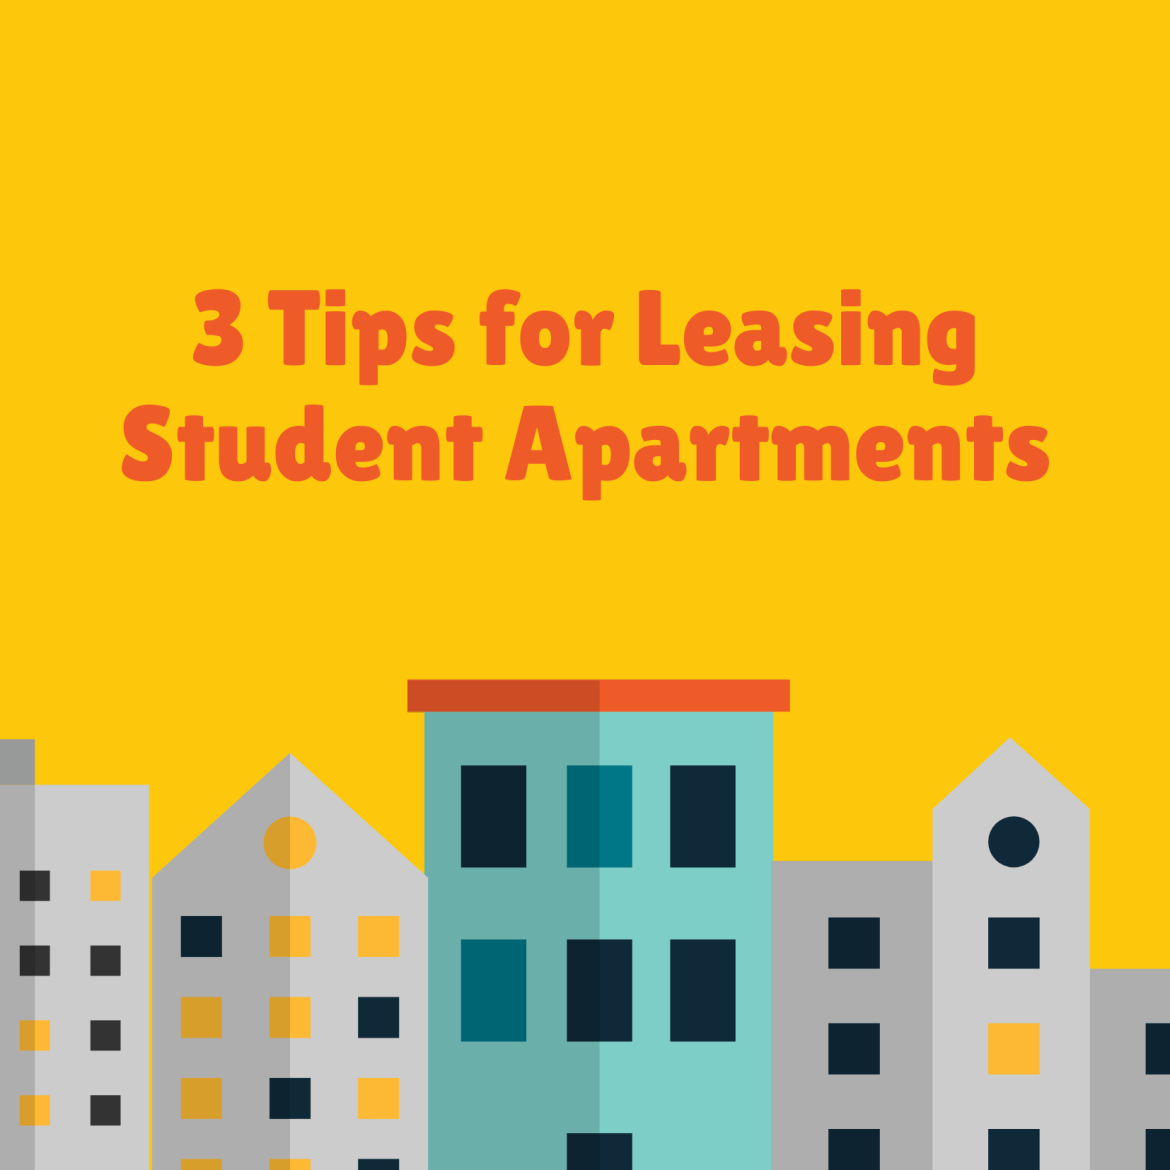 """Image of buildings captioned """"3 Tips for Leasing Student Apartments"""""""